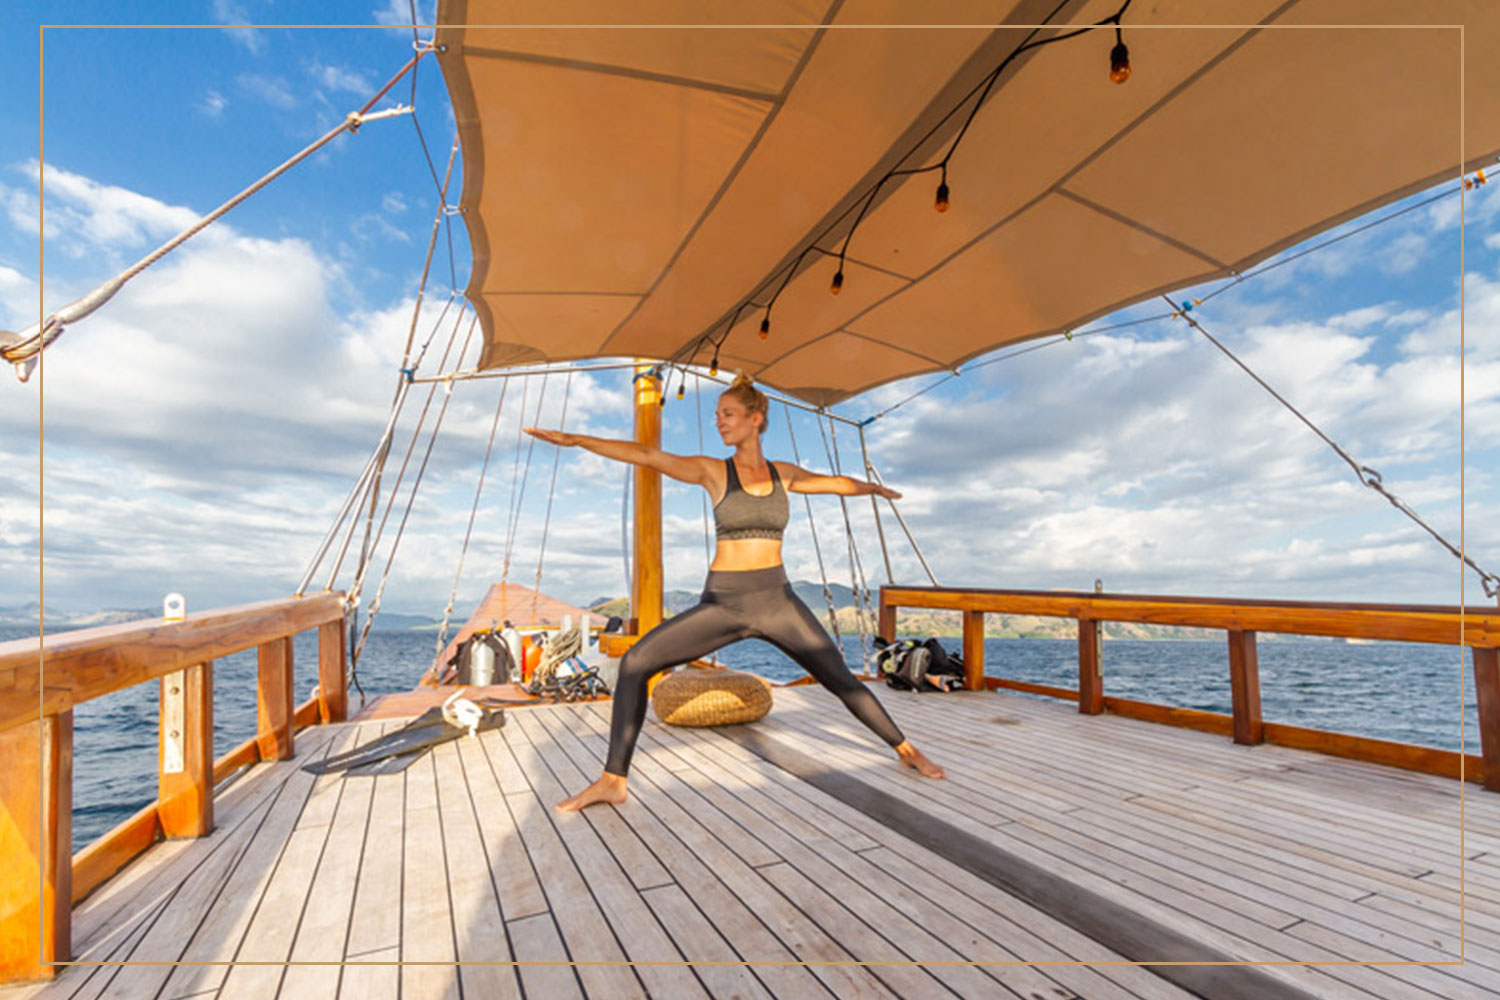 YOGA - Living on a boat would make you feel free and relaxed, why don't you add in some yoga too ? The tradition of doing yoga is well absorbed and manifested in Balinese way of living, the only Hindu majority island in whole Indonesia. Begin your day with some yoga practice on the deck, with some ancient Hindu meditation techniques, connecting corporeal body with the universe of spirituality.